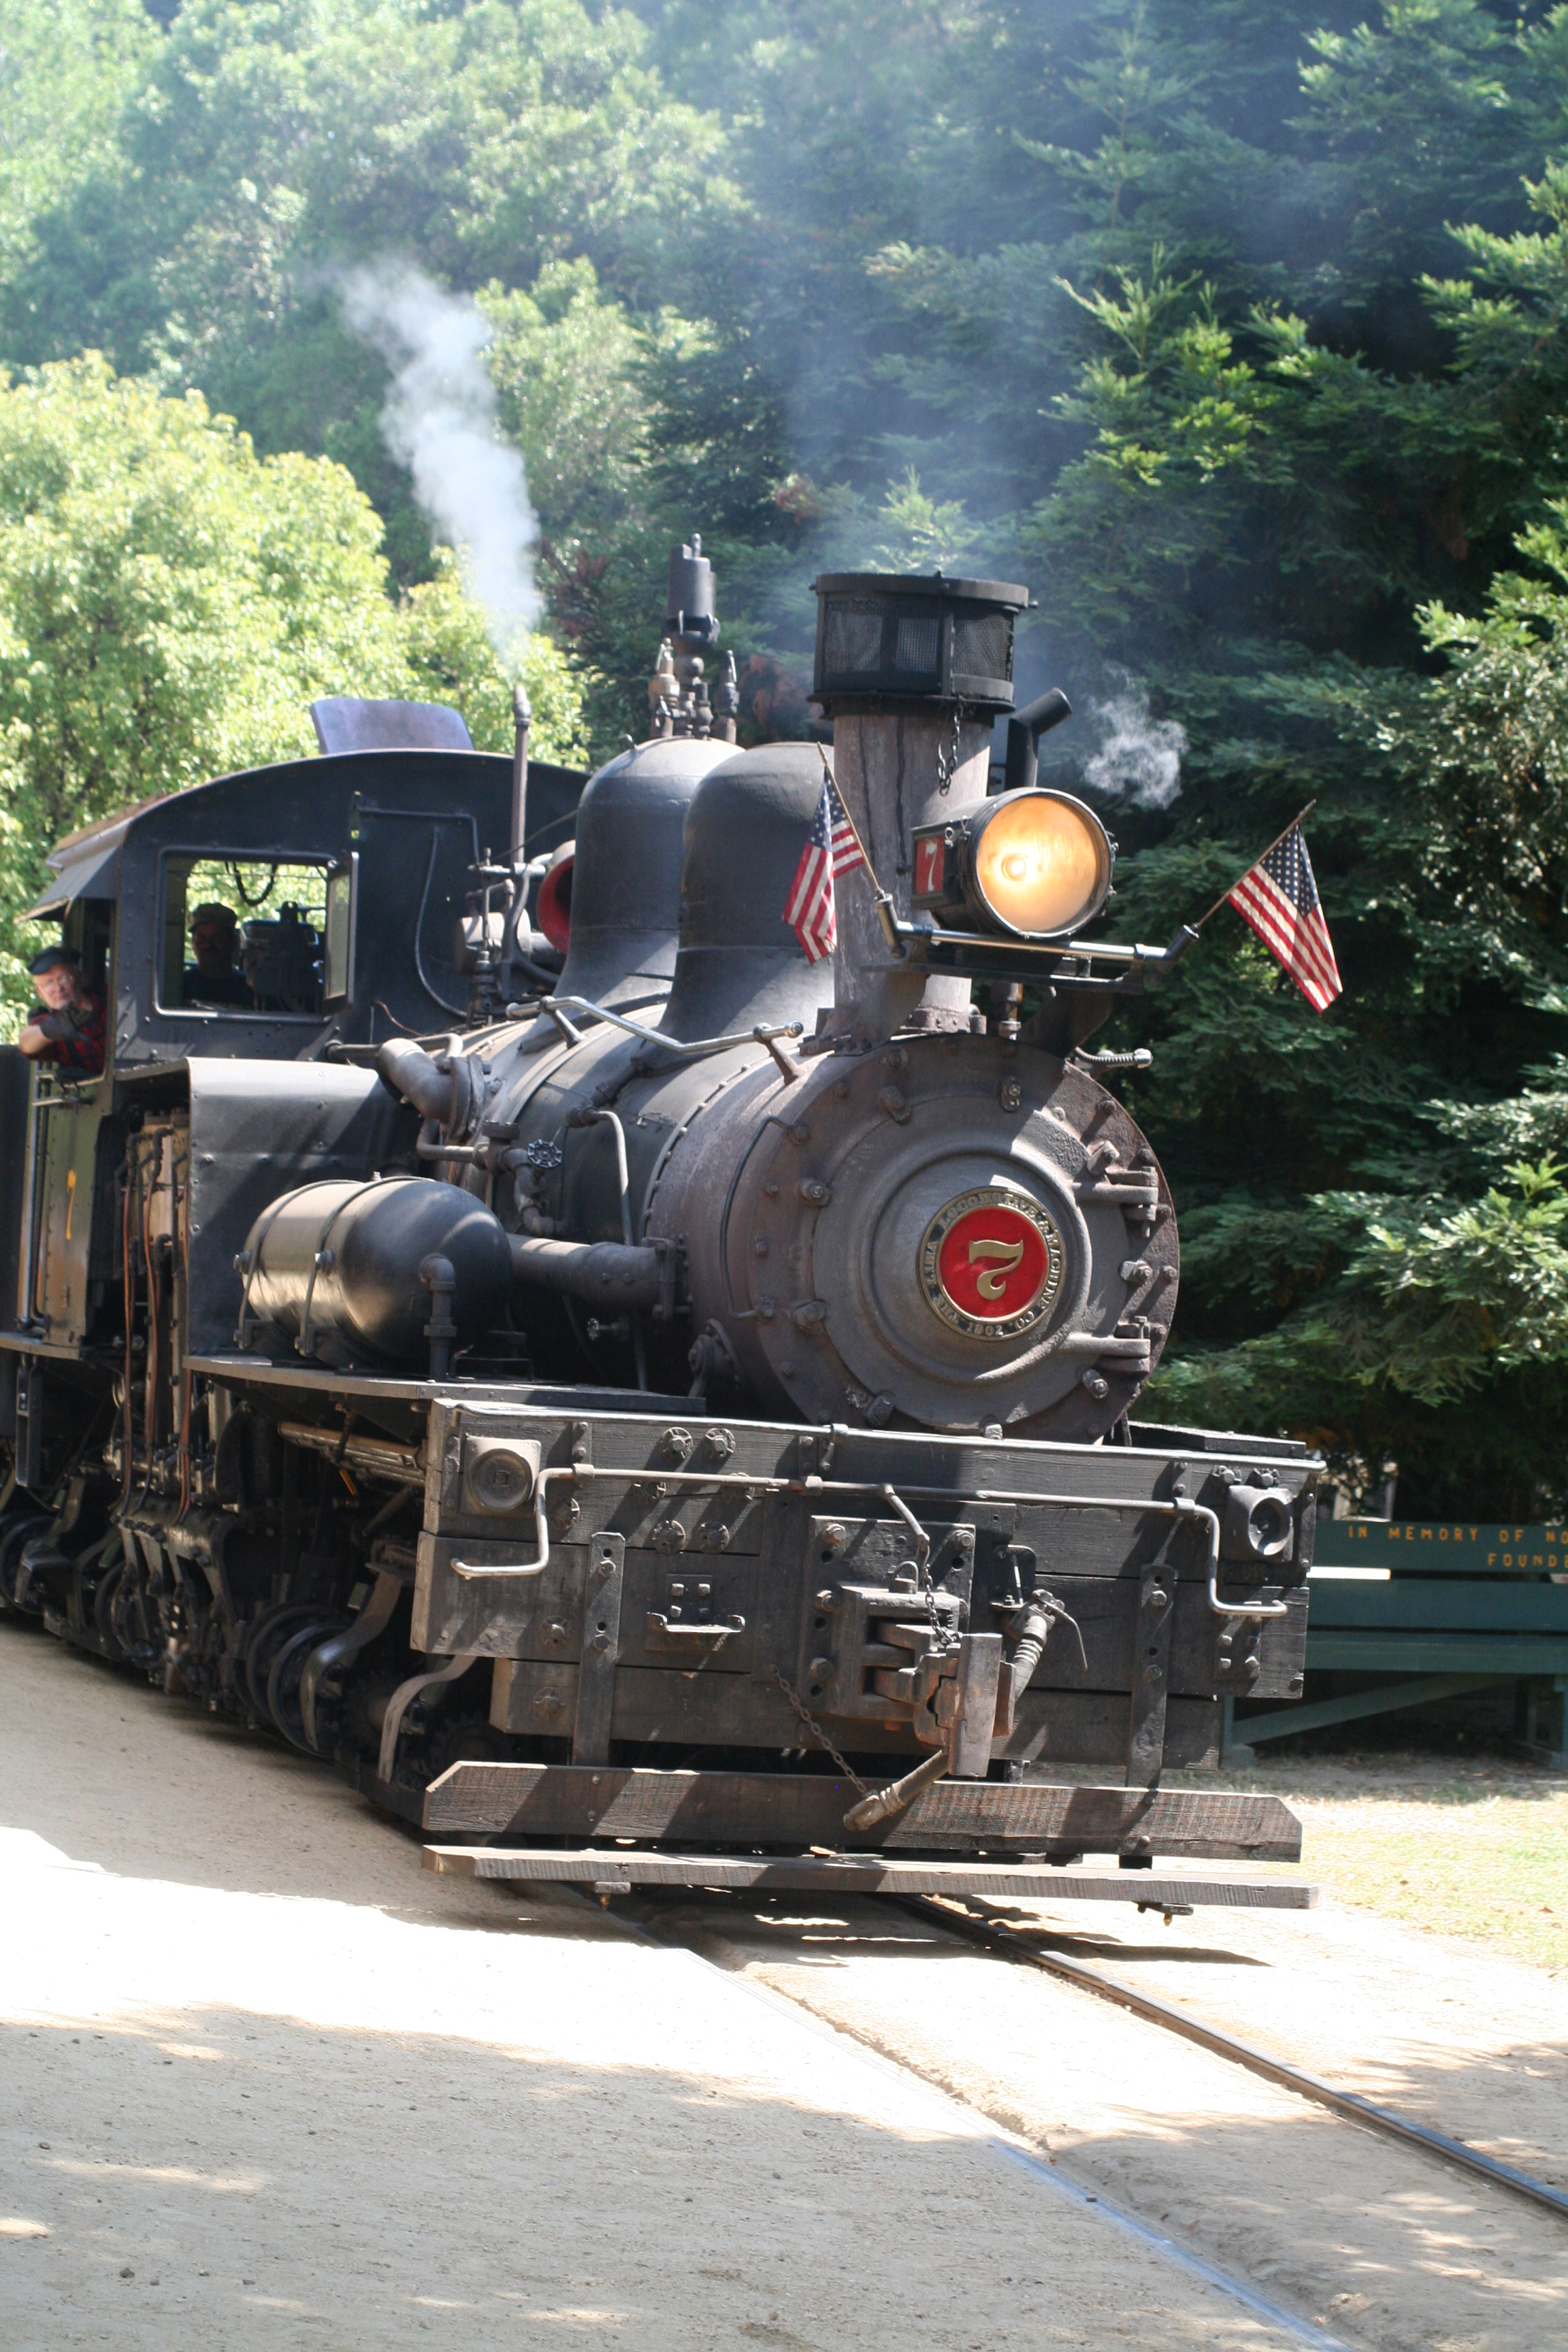 Dec 05, · Roaring Camp Steam Train Through Santa Cruz Redwoods. Attraction Tickets. From $* More Info. Can you take a Lyft from Santa Cruz to roaring Camp Railroads. We are staying in Santa Cruz and won't have a car. September 28, | Answer Show all 5 answers Hide all answers/5().